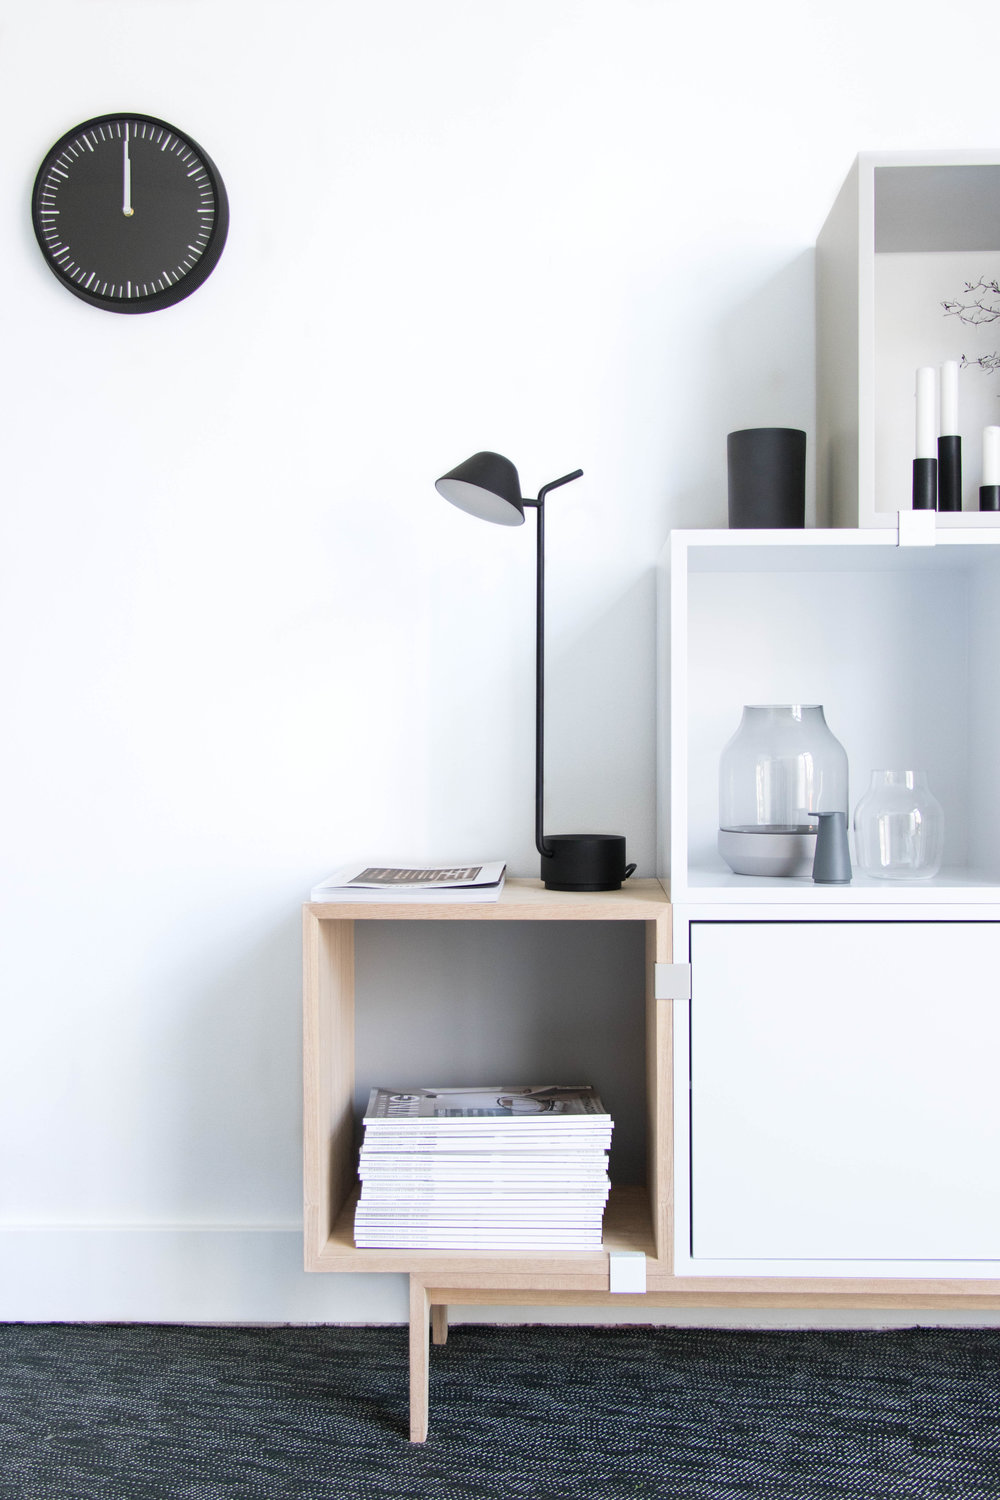 New setup - with our stacked storage system from Muuto